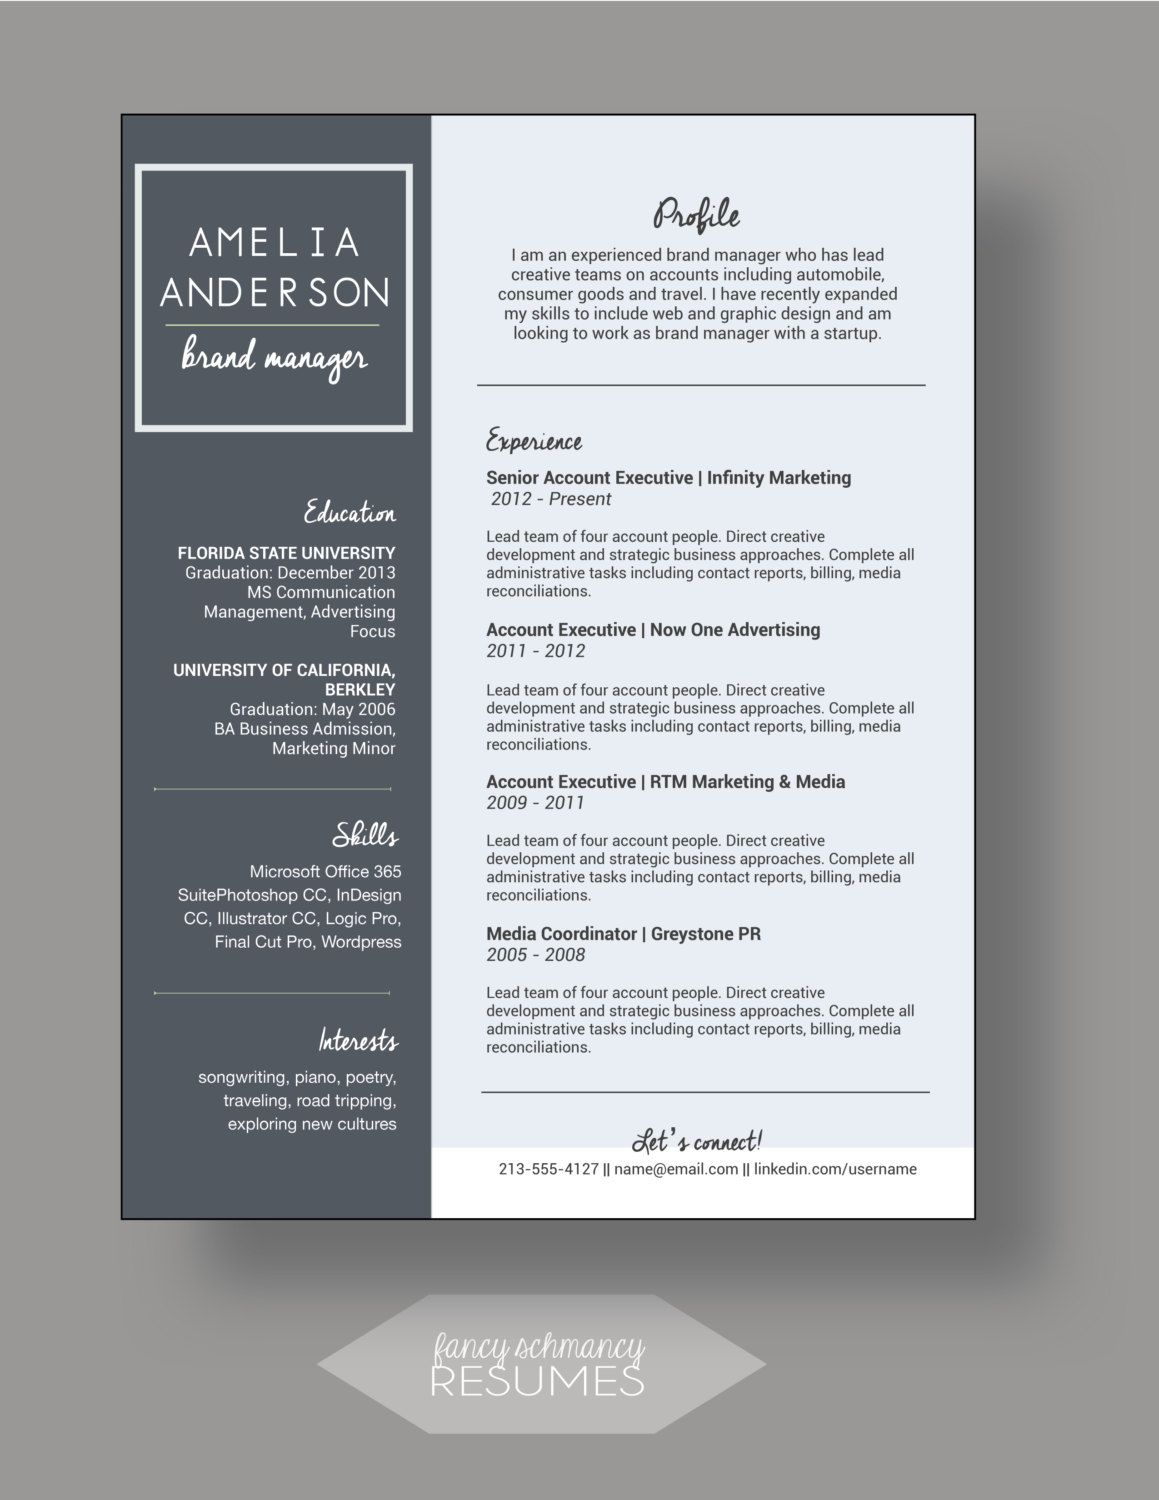 Blue and Grey Resume Cover Letter by FancyShmancyResumes